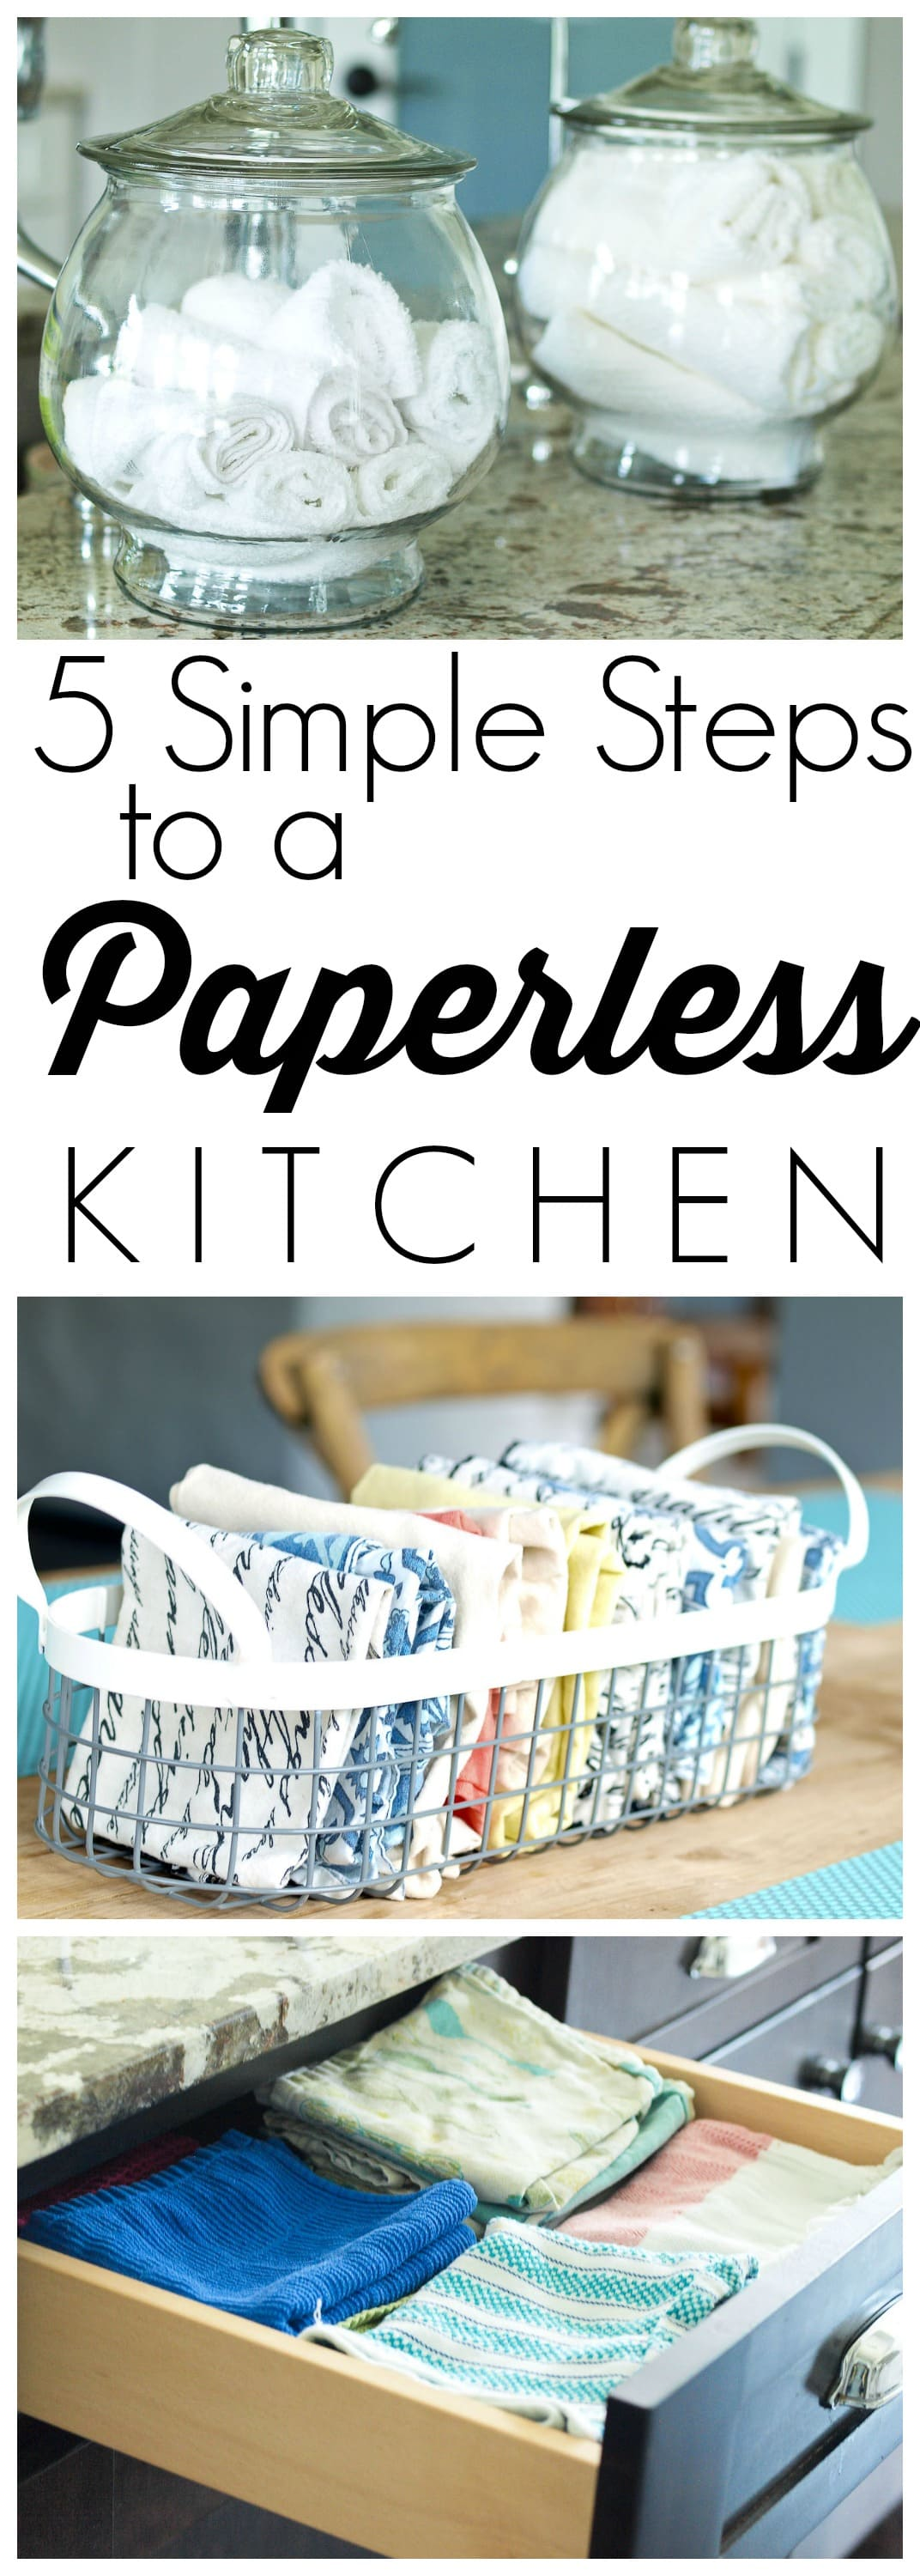 5 Simple Tips to Transition to a Paperless Kitchen - Happy Healthy Mama